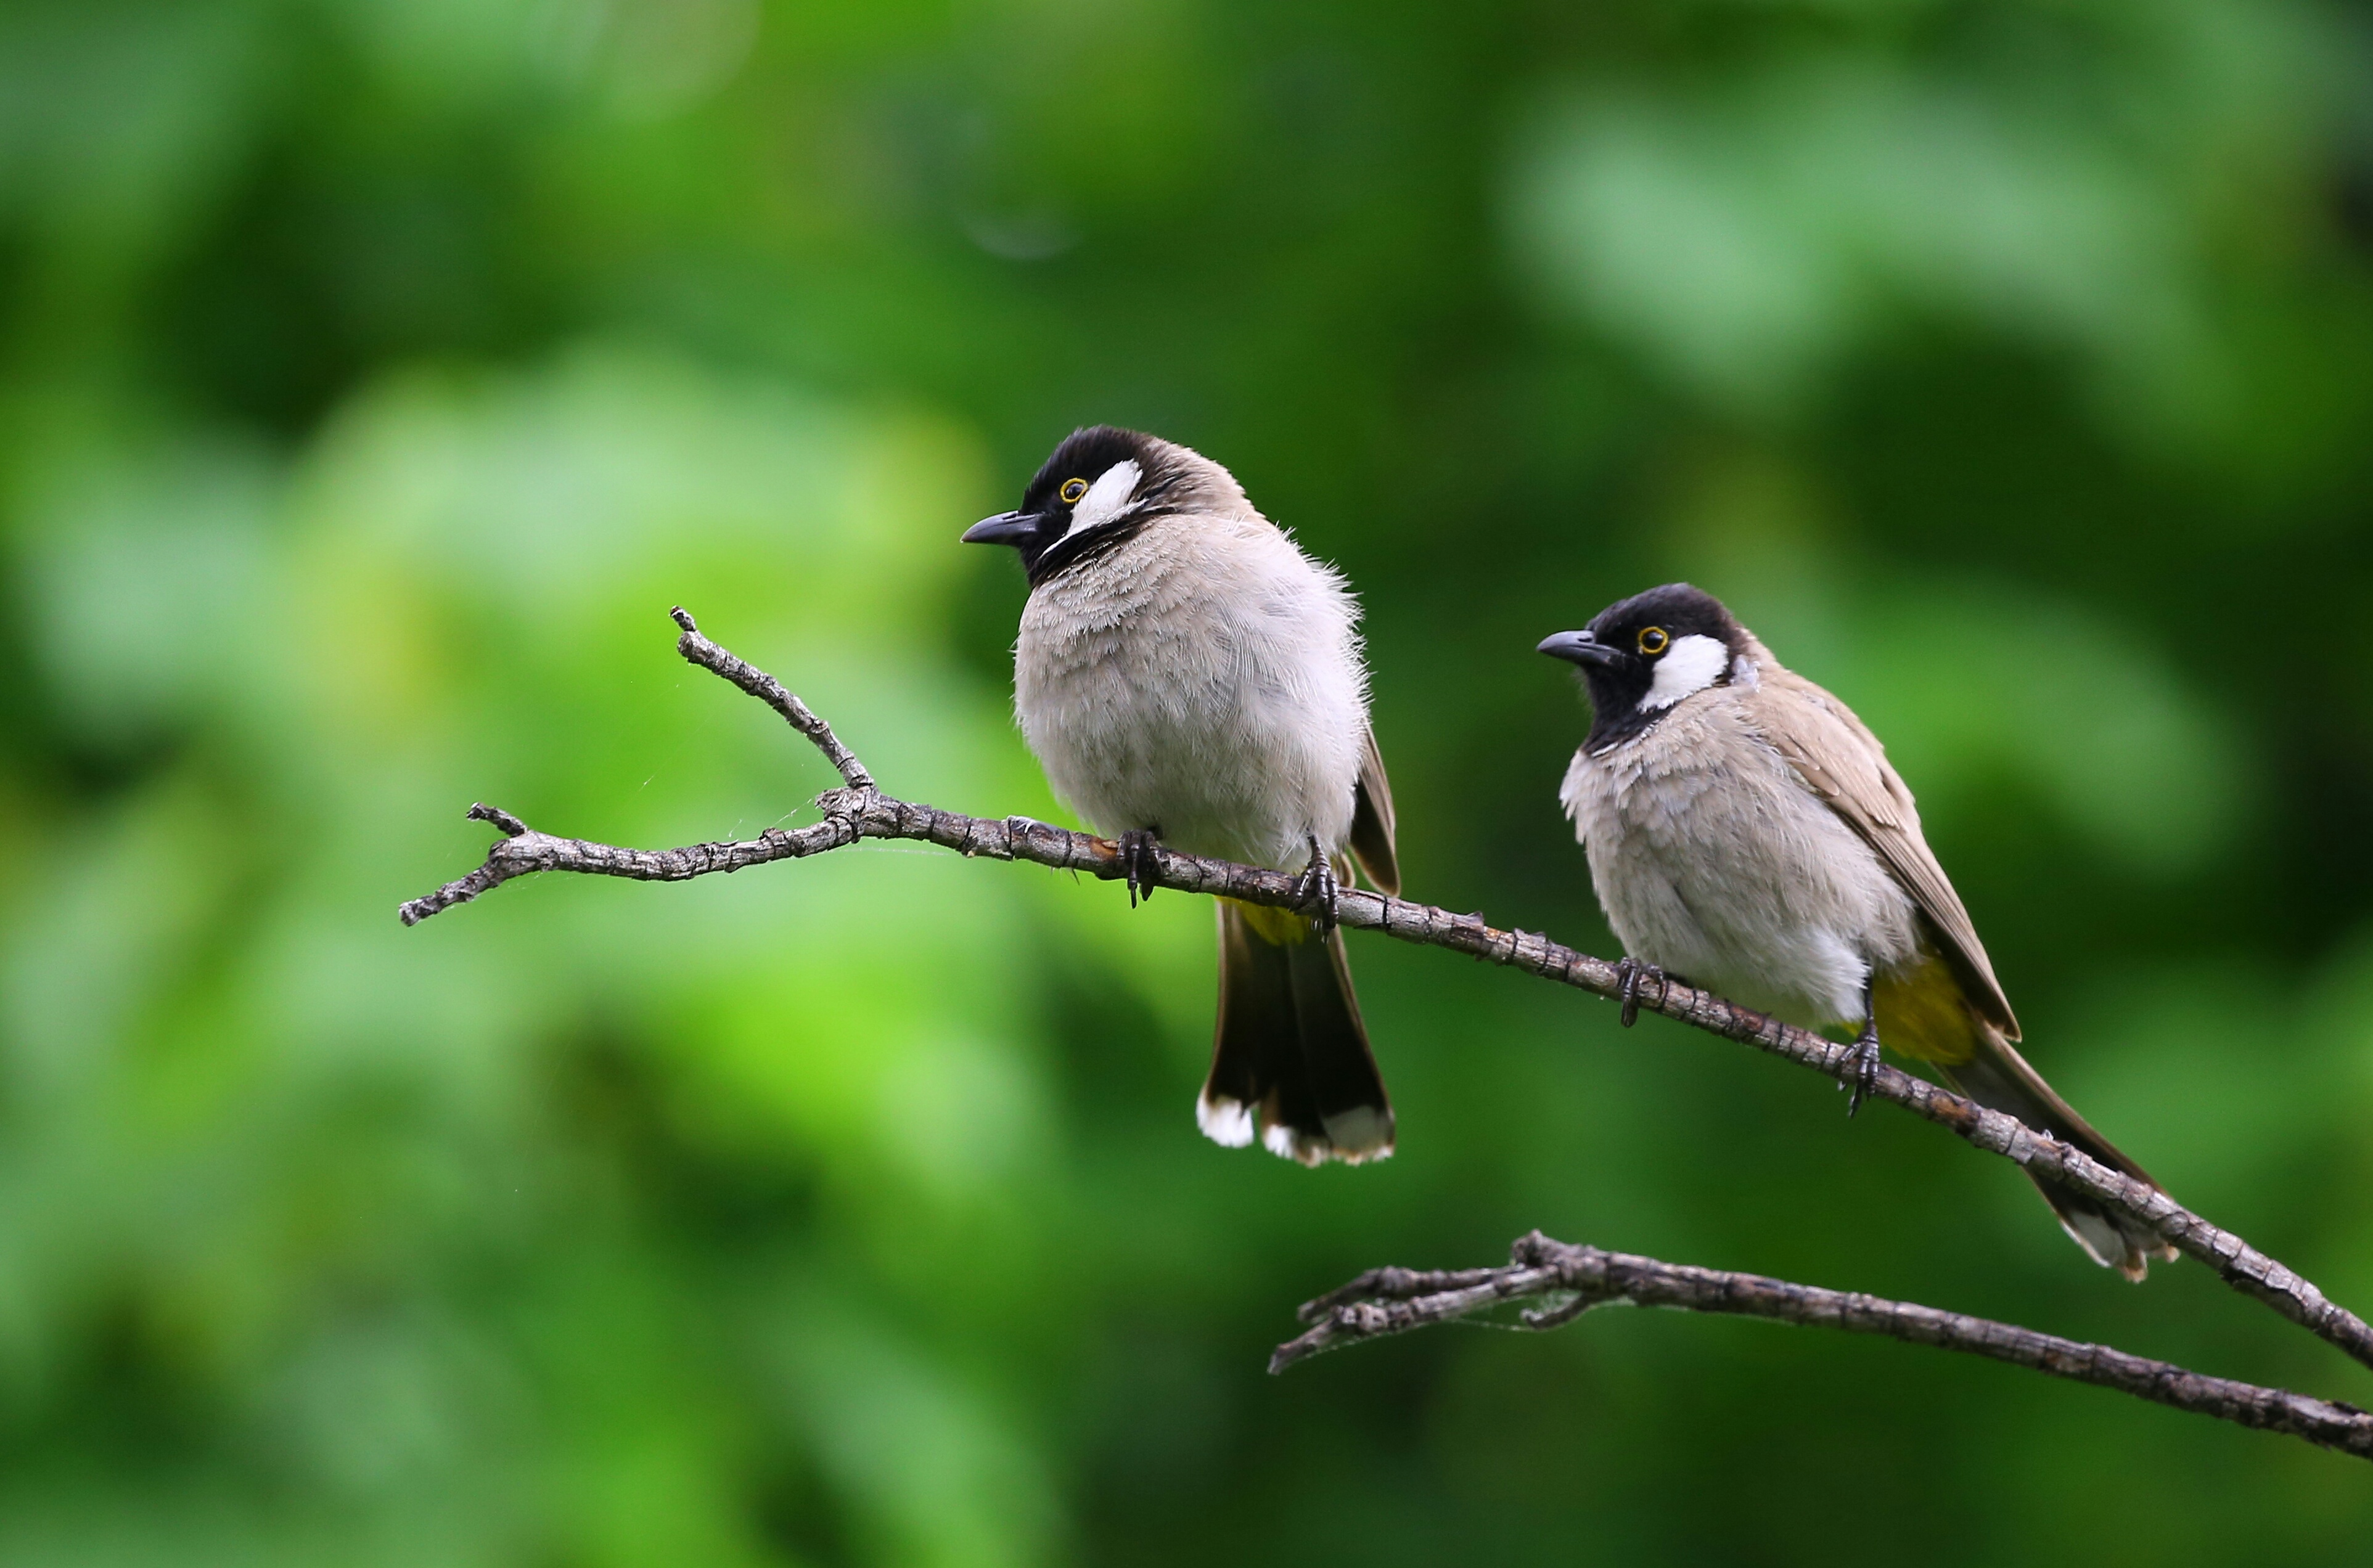 white and black birds piercing on tree branch free stock photo